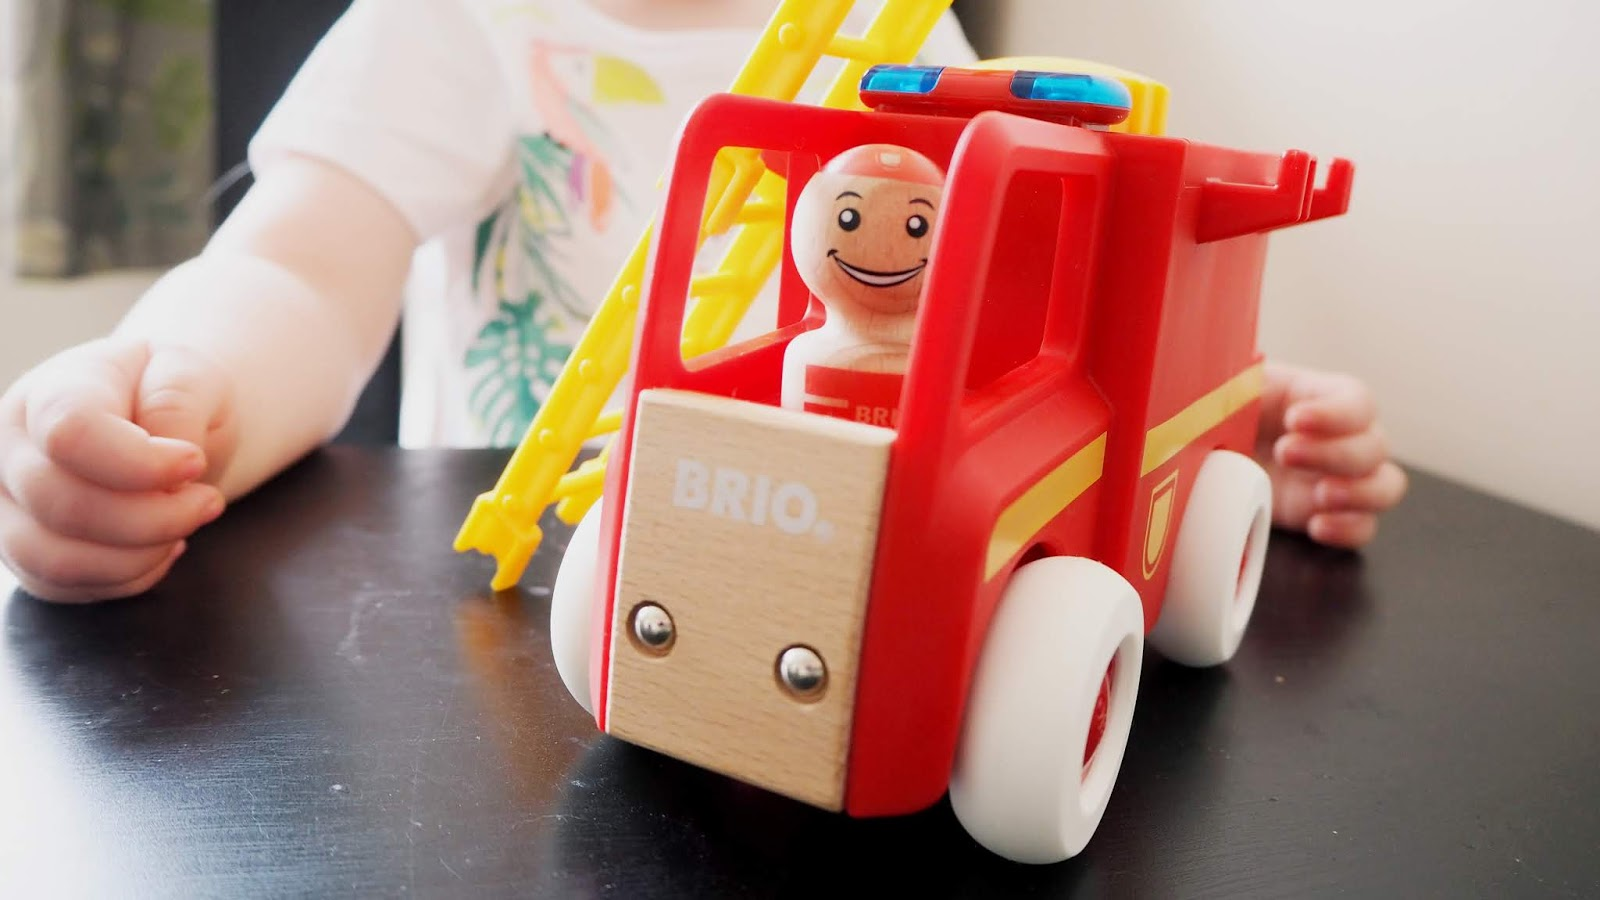 A close up photo of the fire truck toy. The brio logo can be seen on the front, with a wooden man inside the front of the fire truck. Elise is sitting behind.